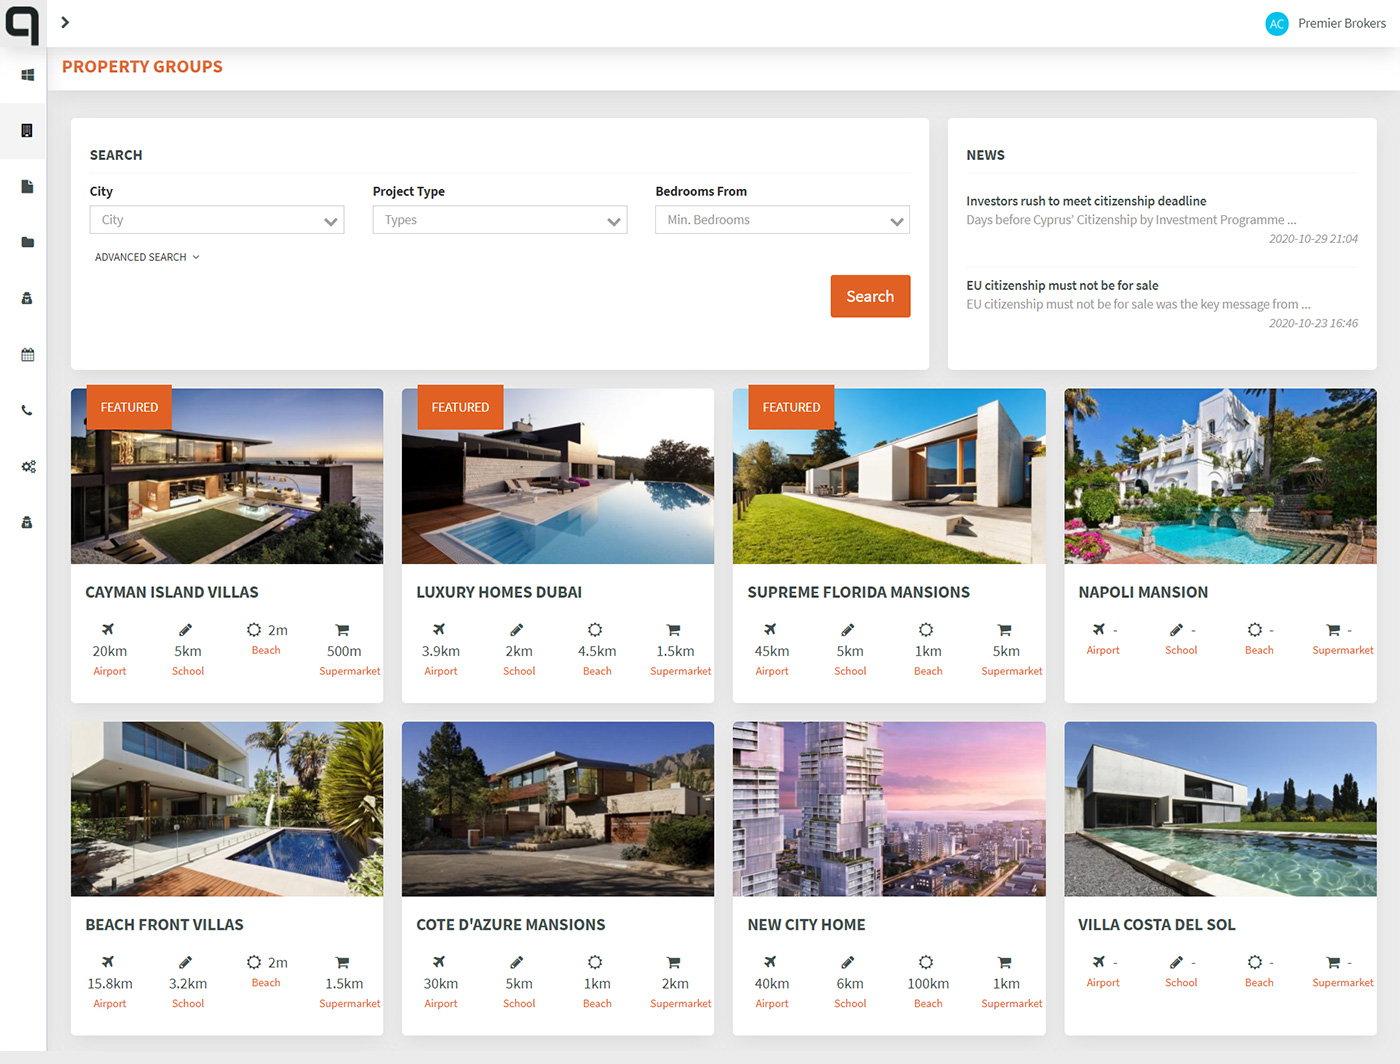 Real Estate Agent Portal property listing and search functionality